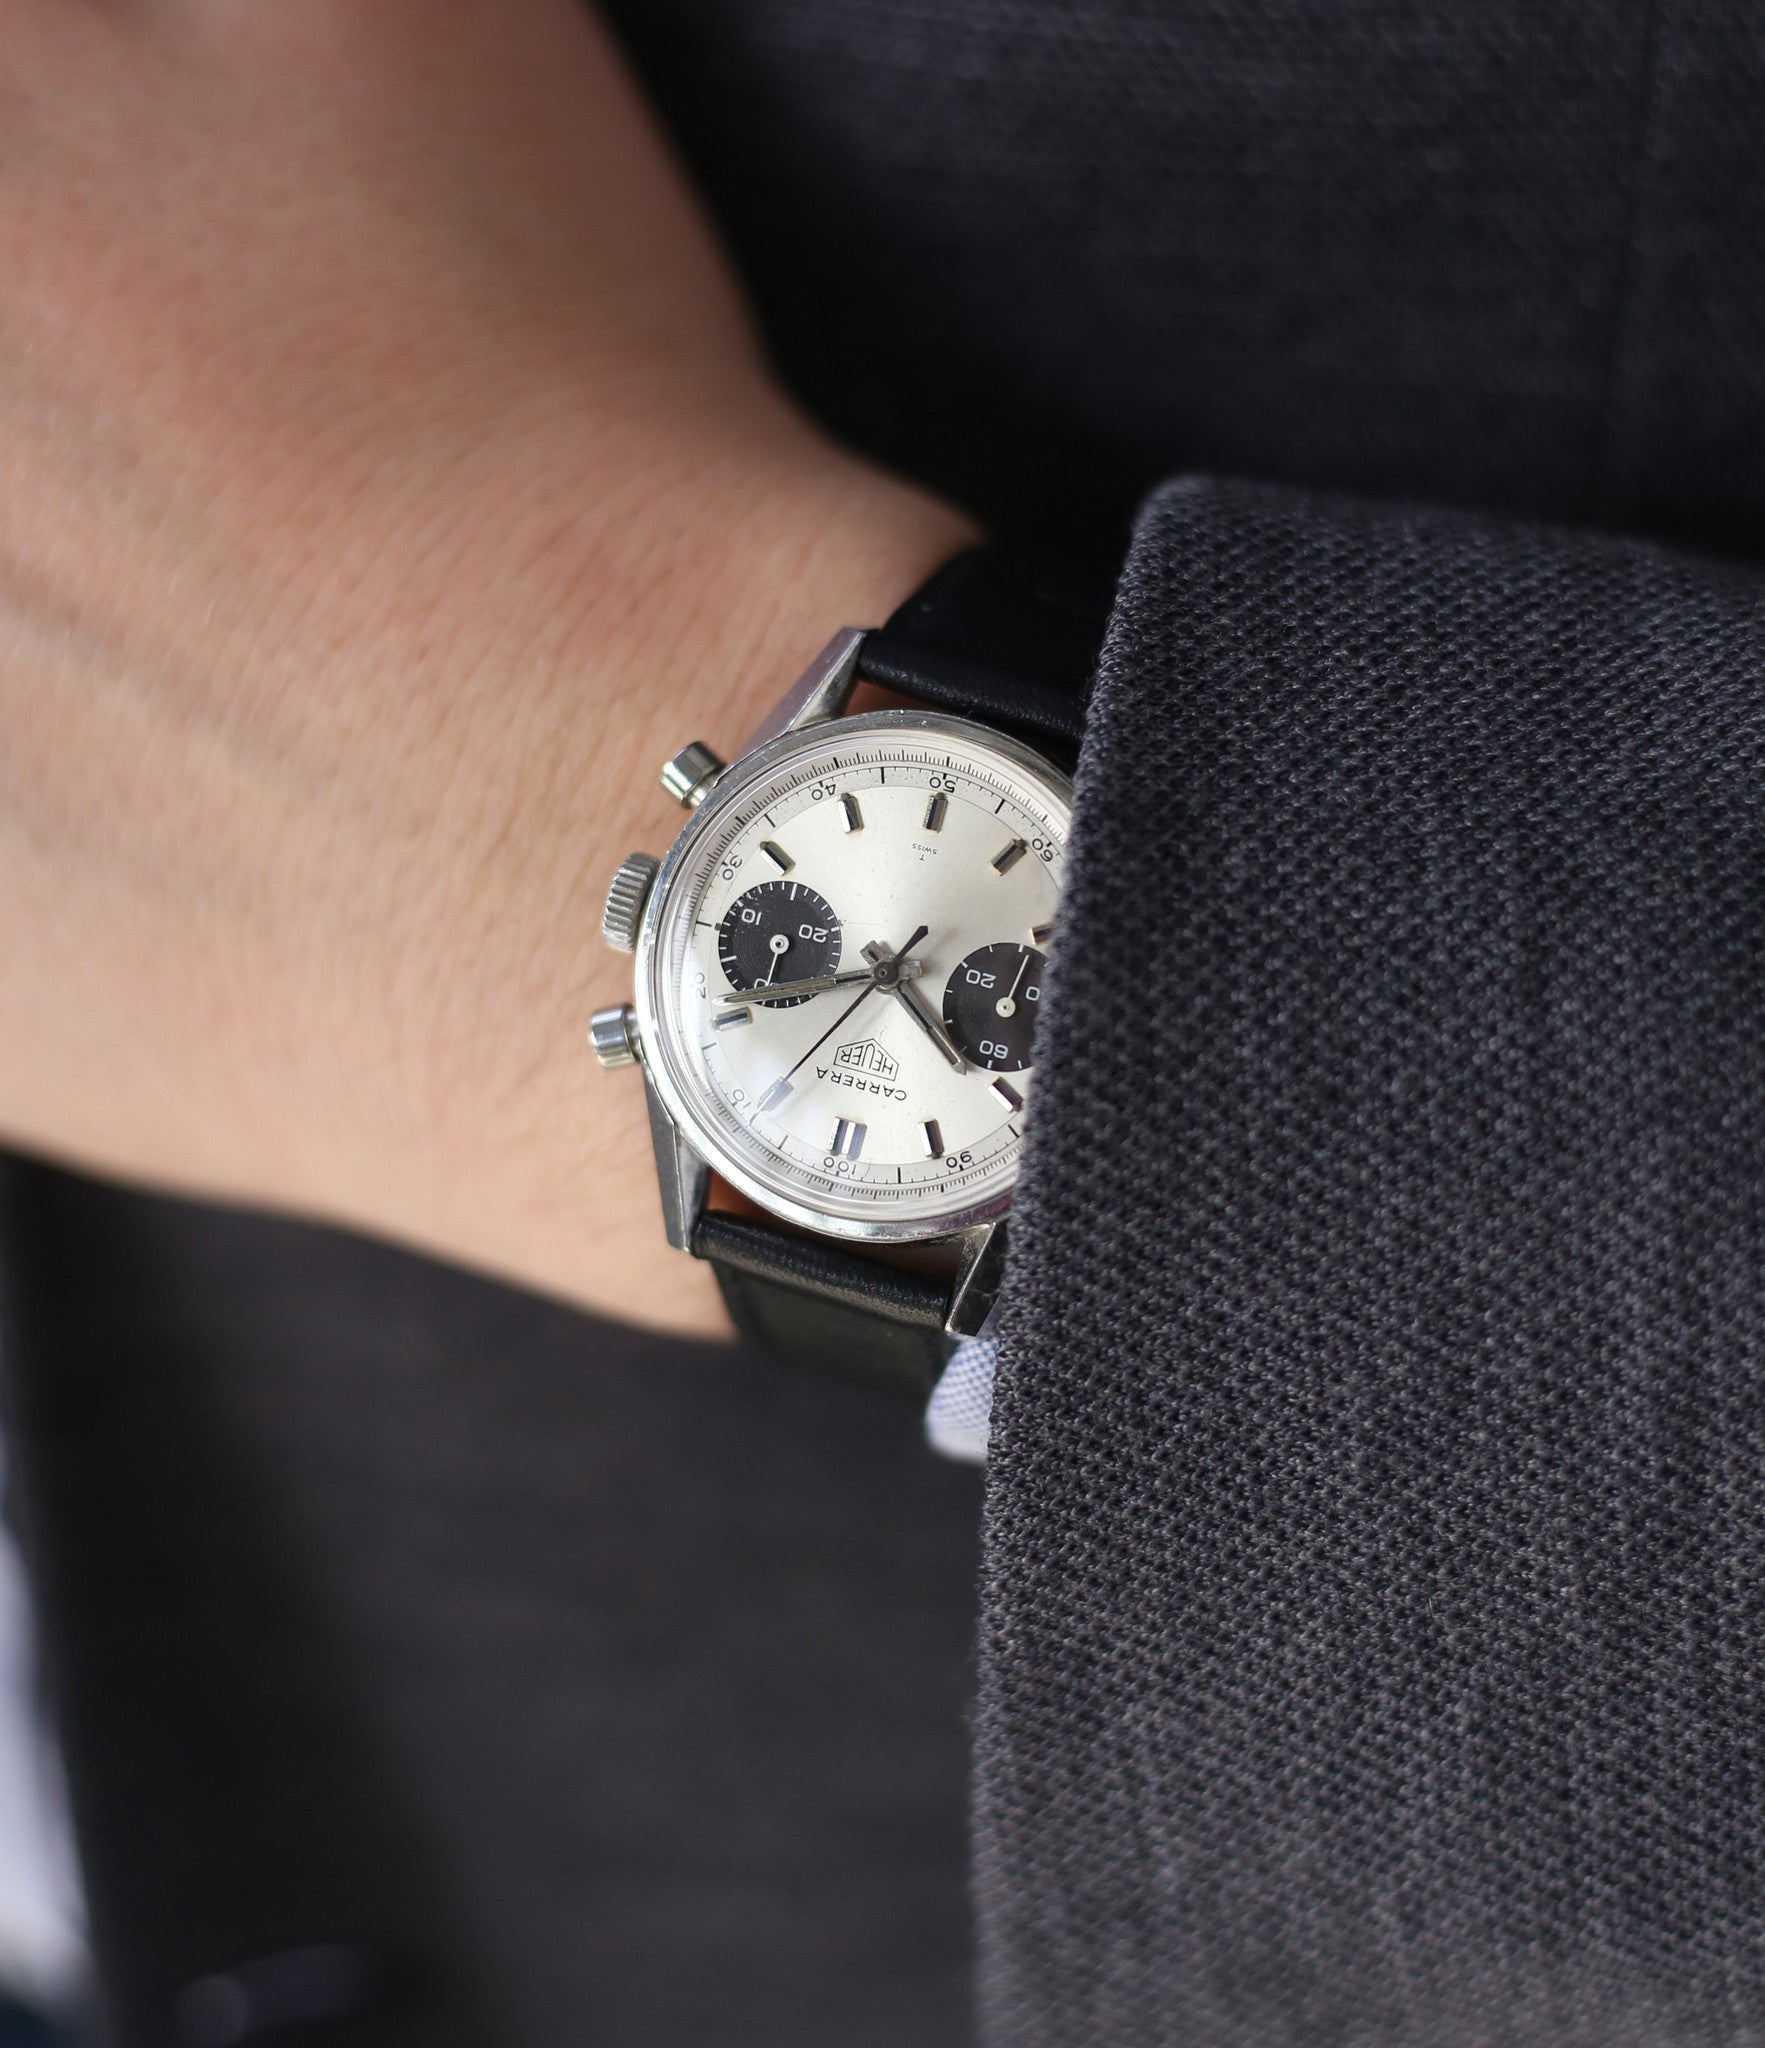 Heuer Carrera 7753SND vintage chronograph sports watch panda dial online at A Collected Man